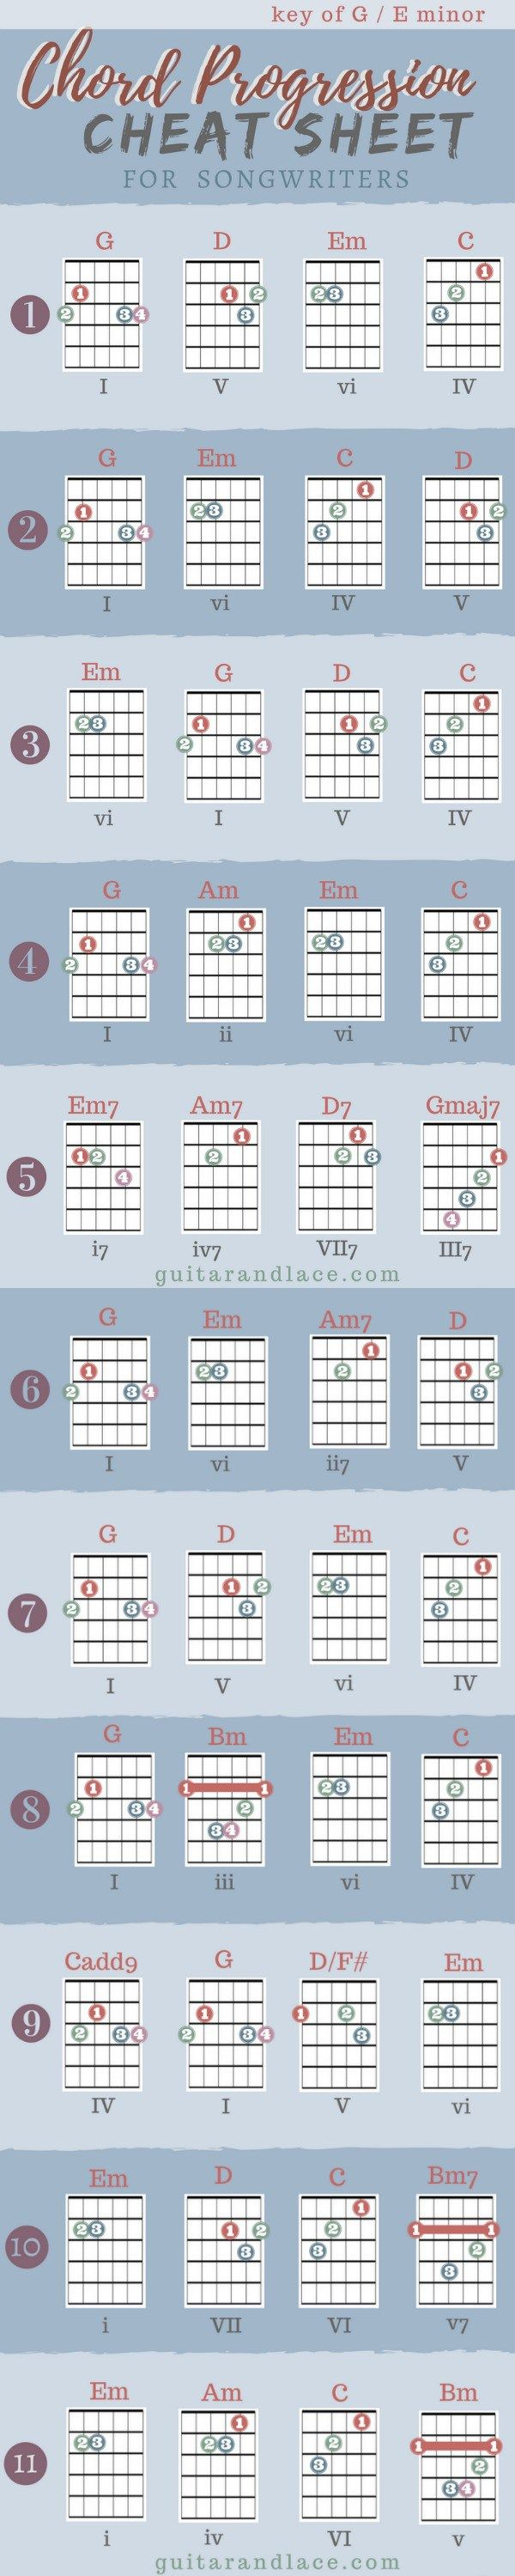 105 Best Guitar Scales Chords Images On Pinterest Guitar Chords